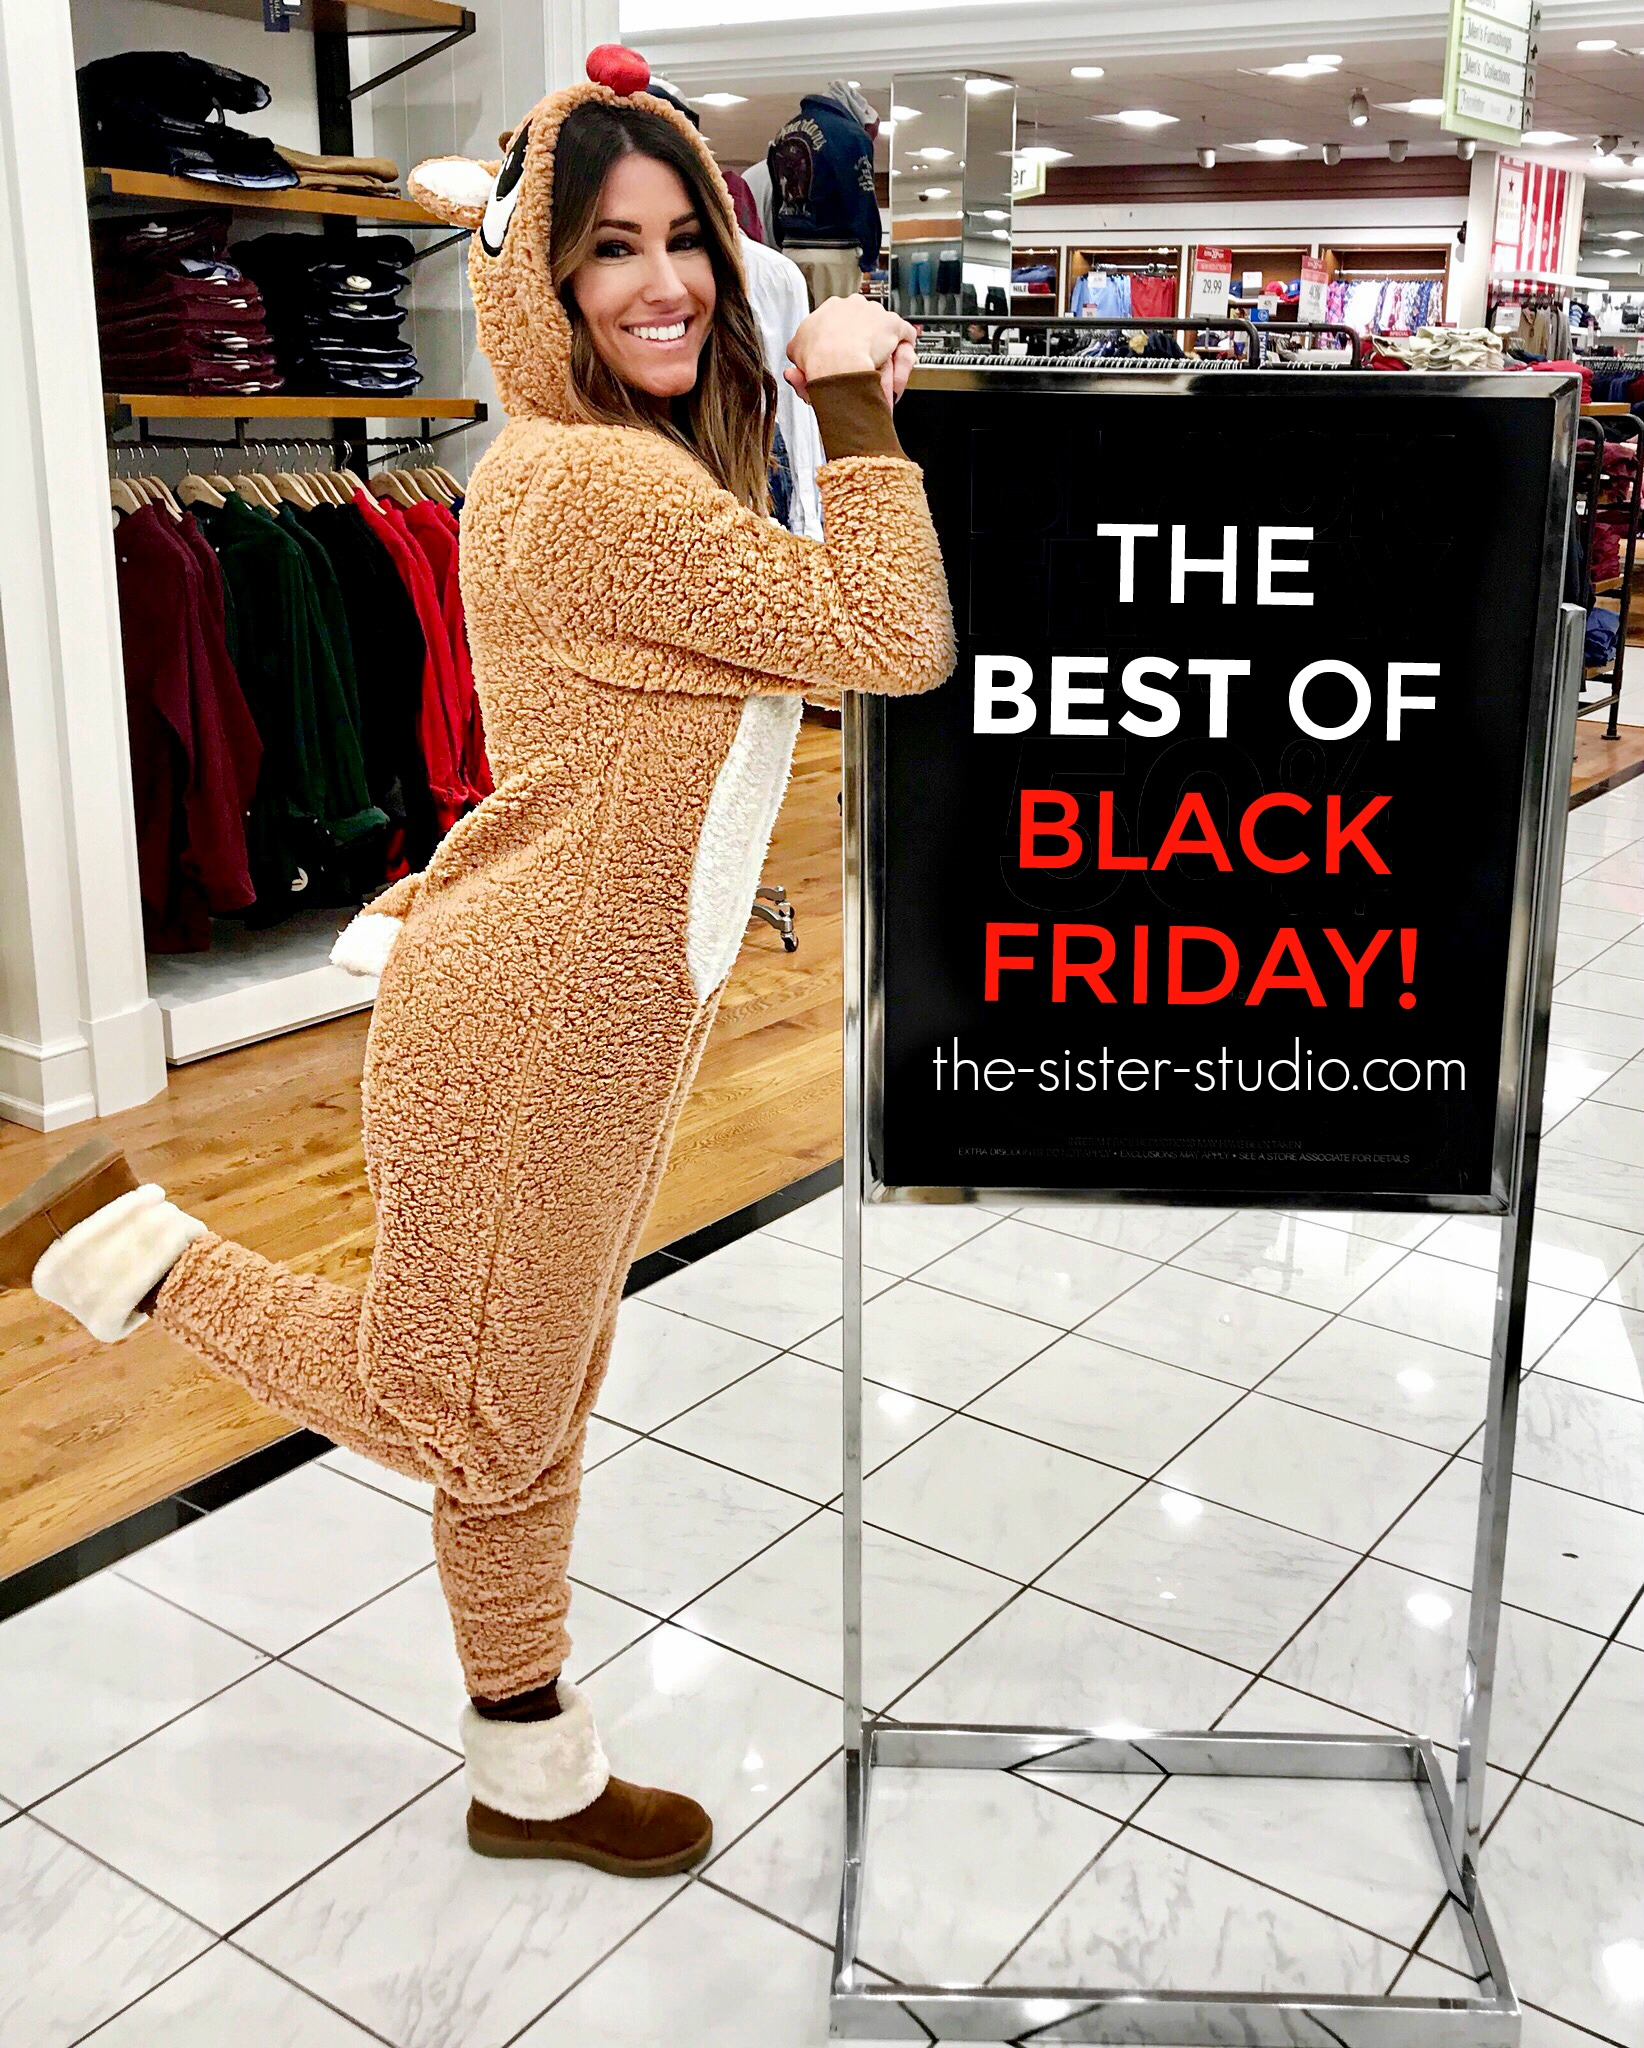 a37aed3b35b39 Black Friday Sales are HERE! So many retailers kicked off their Black Friday  sales early this year! There is a lot of FREE SHIPPING going on